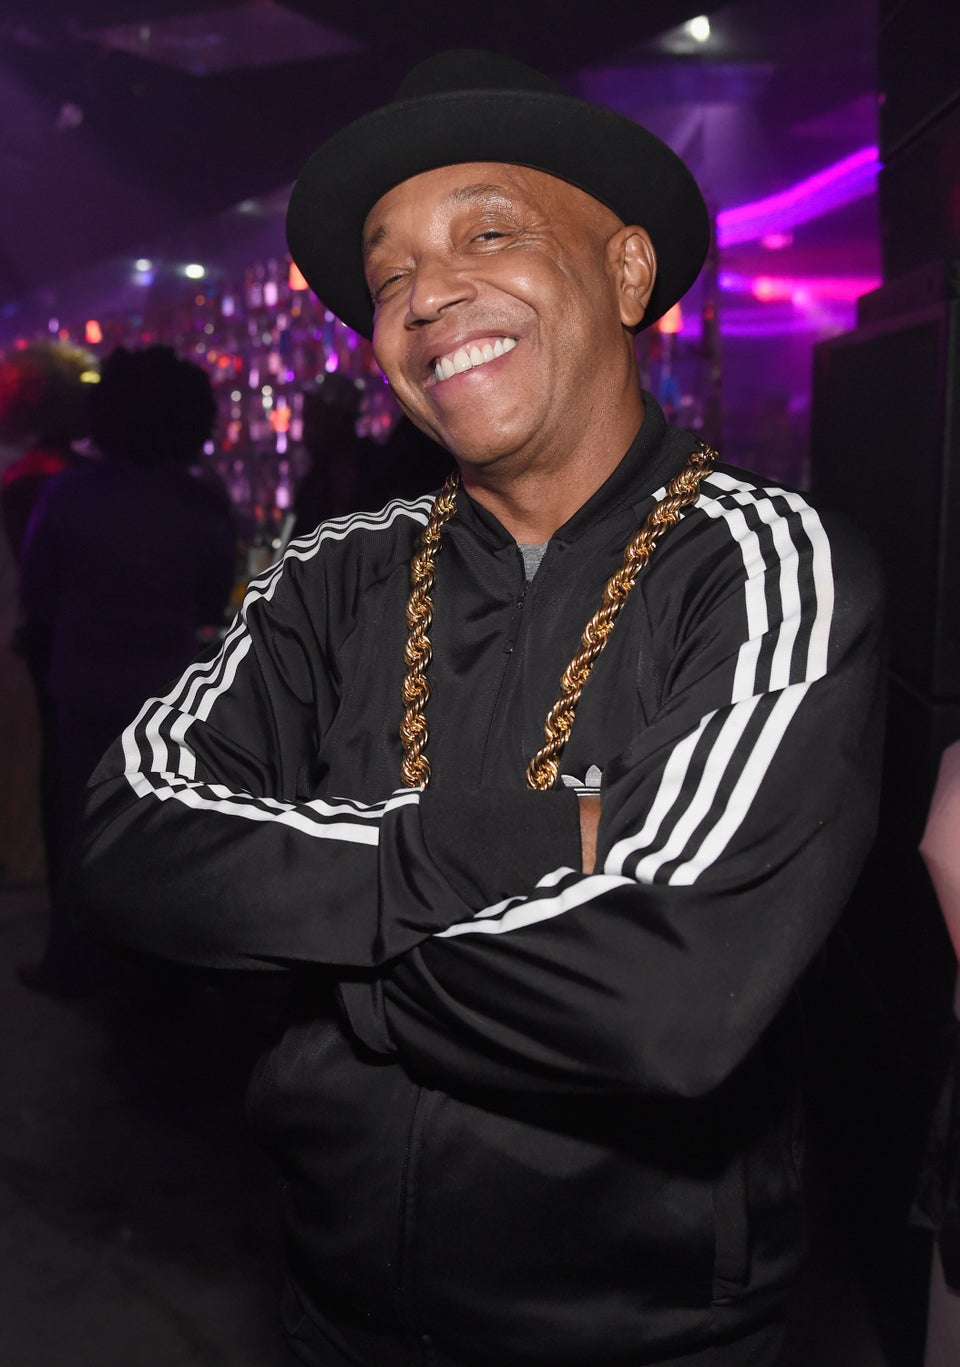 Russell Simmons Steps Down From His CompaniesAfter Sexual Assault Allegations